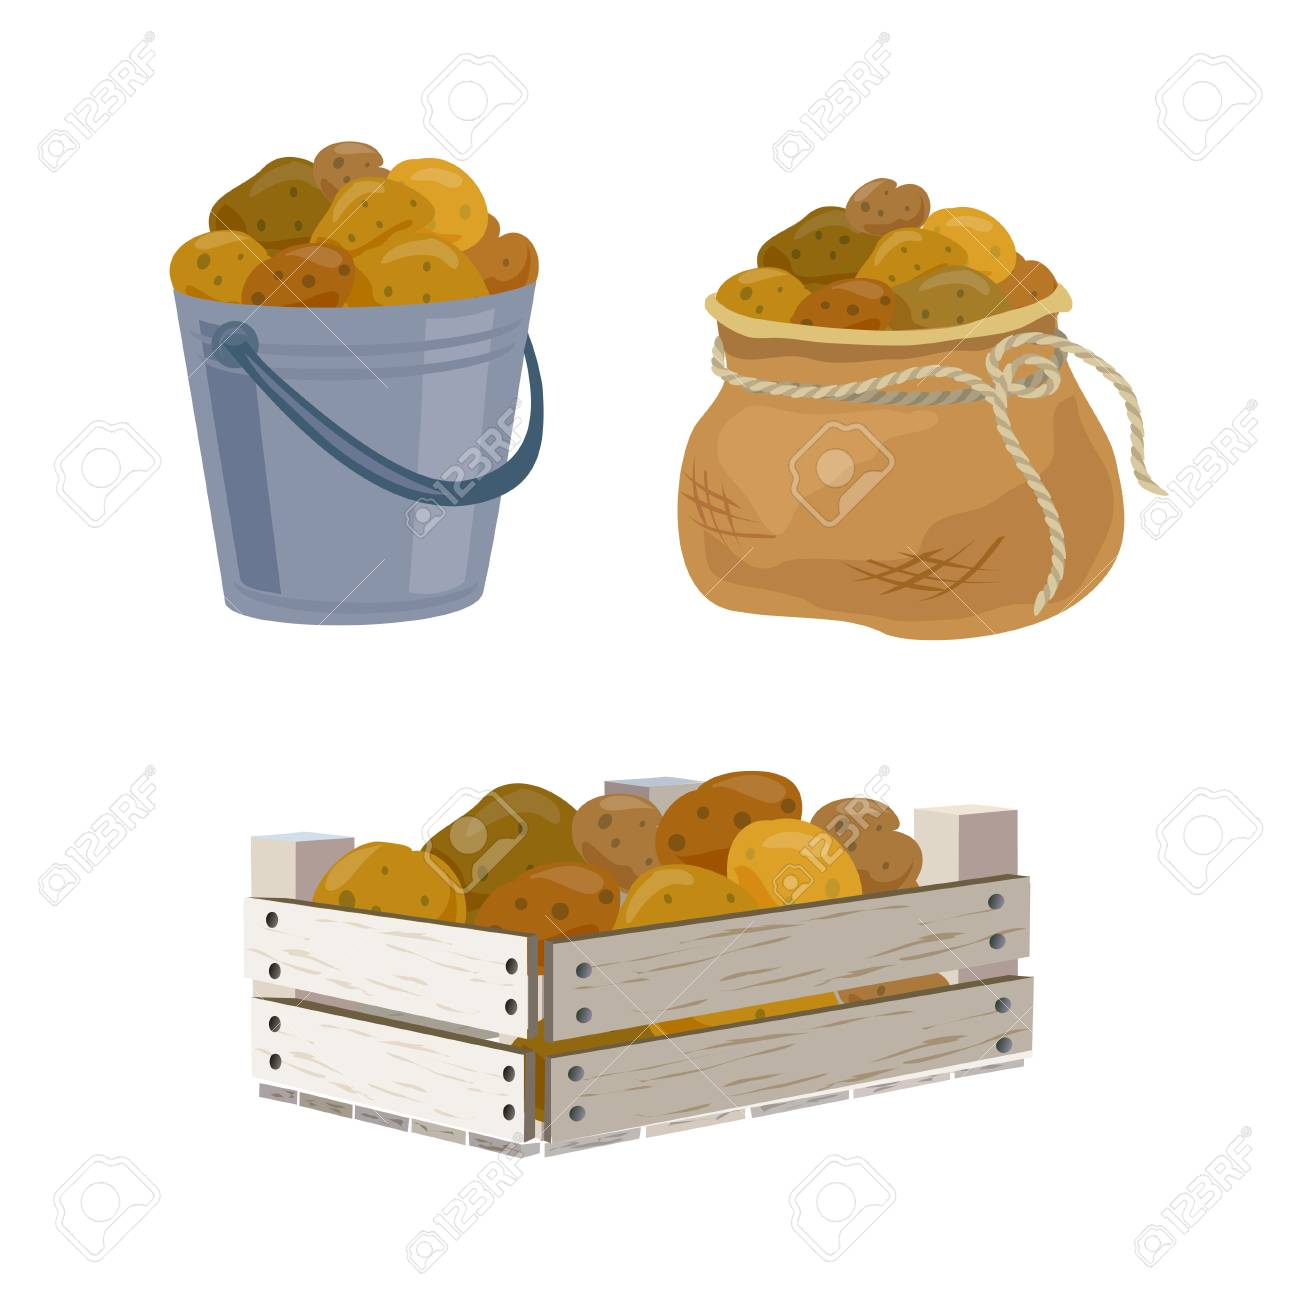 potato harvest in different containers. vector illustration - 113257519